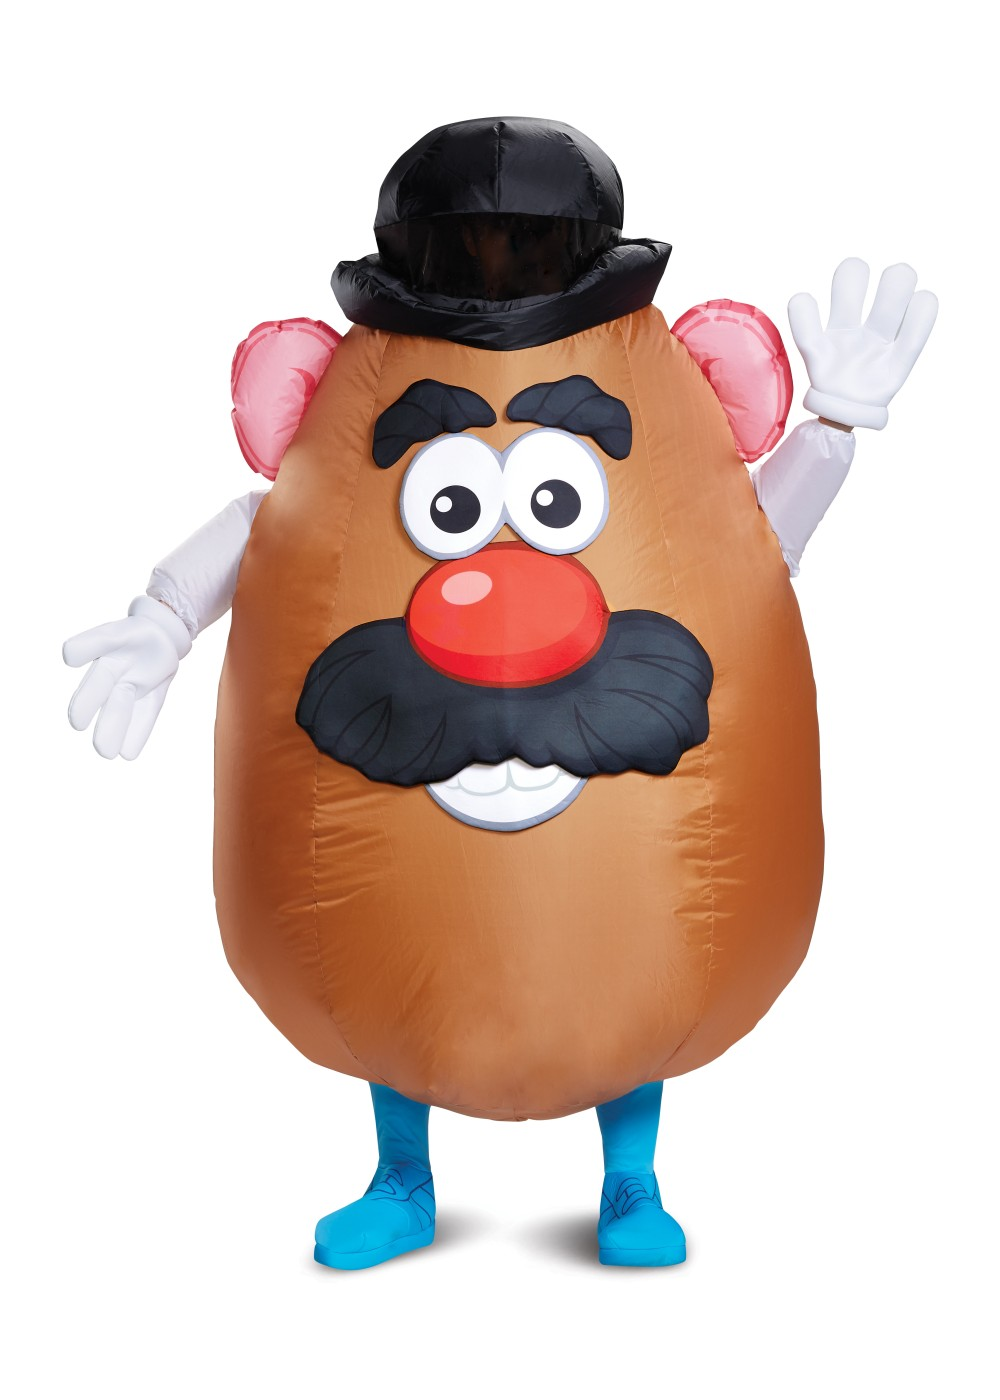 Toy' Story's Potato Head Inflatable Costume